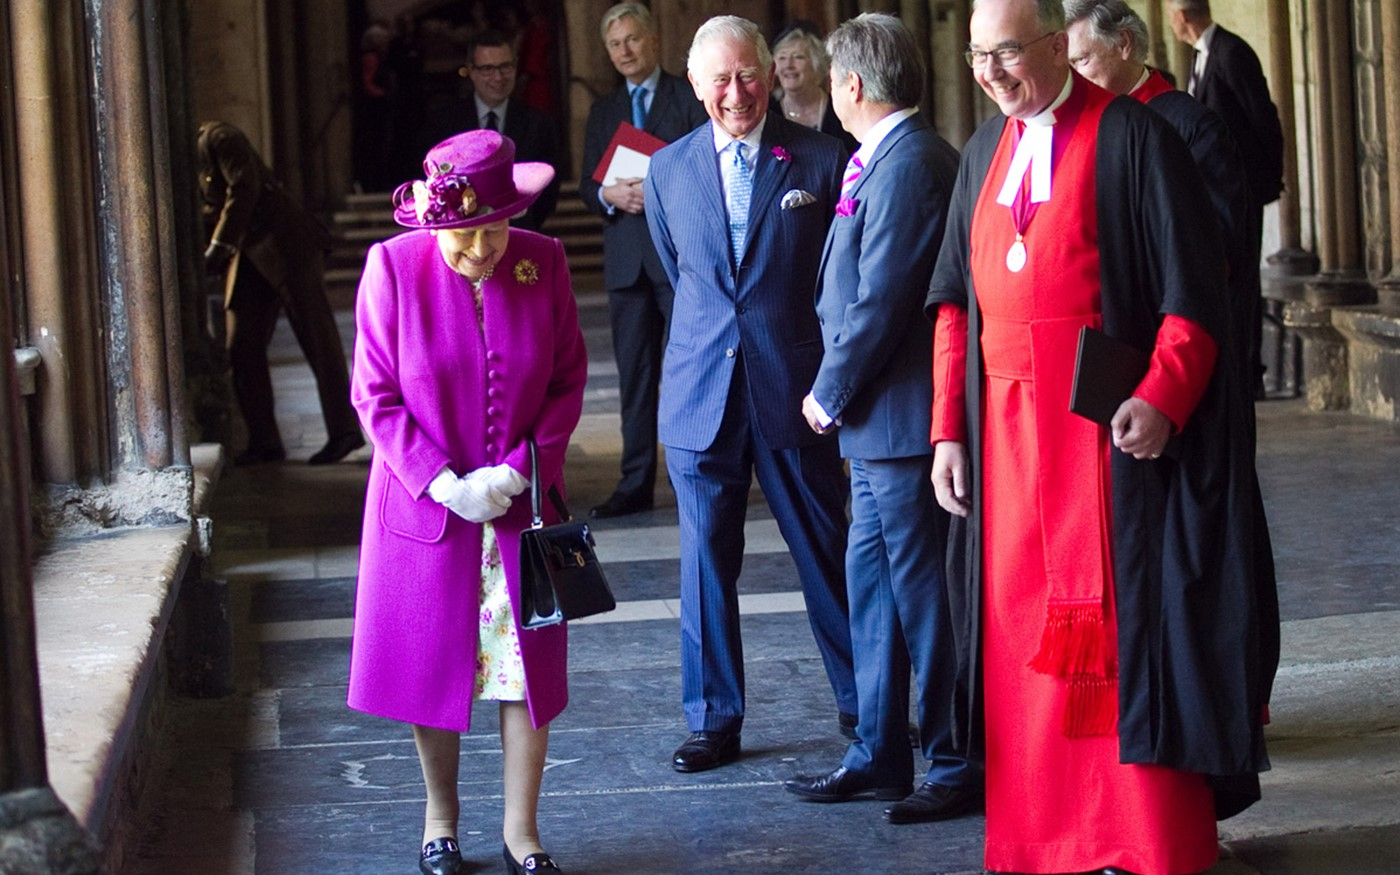 The Queen and Prince Charles meet Alan Titchmarsh, who helped develop a memorial fountain to 'Capability' Brown